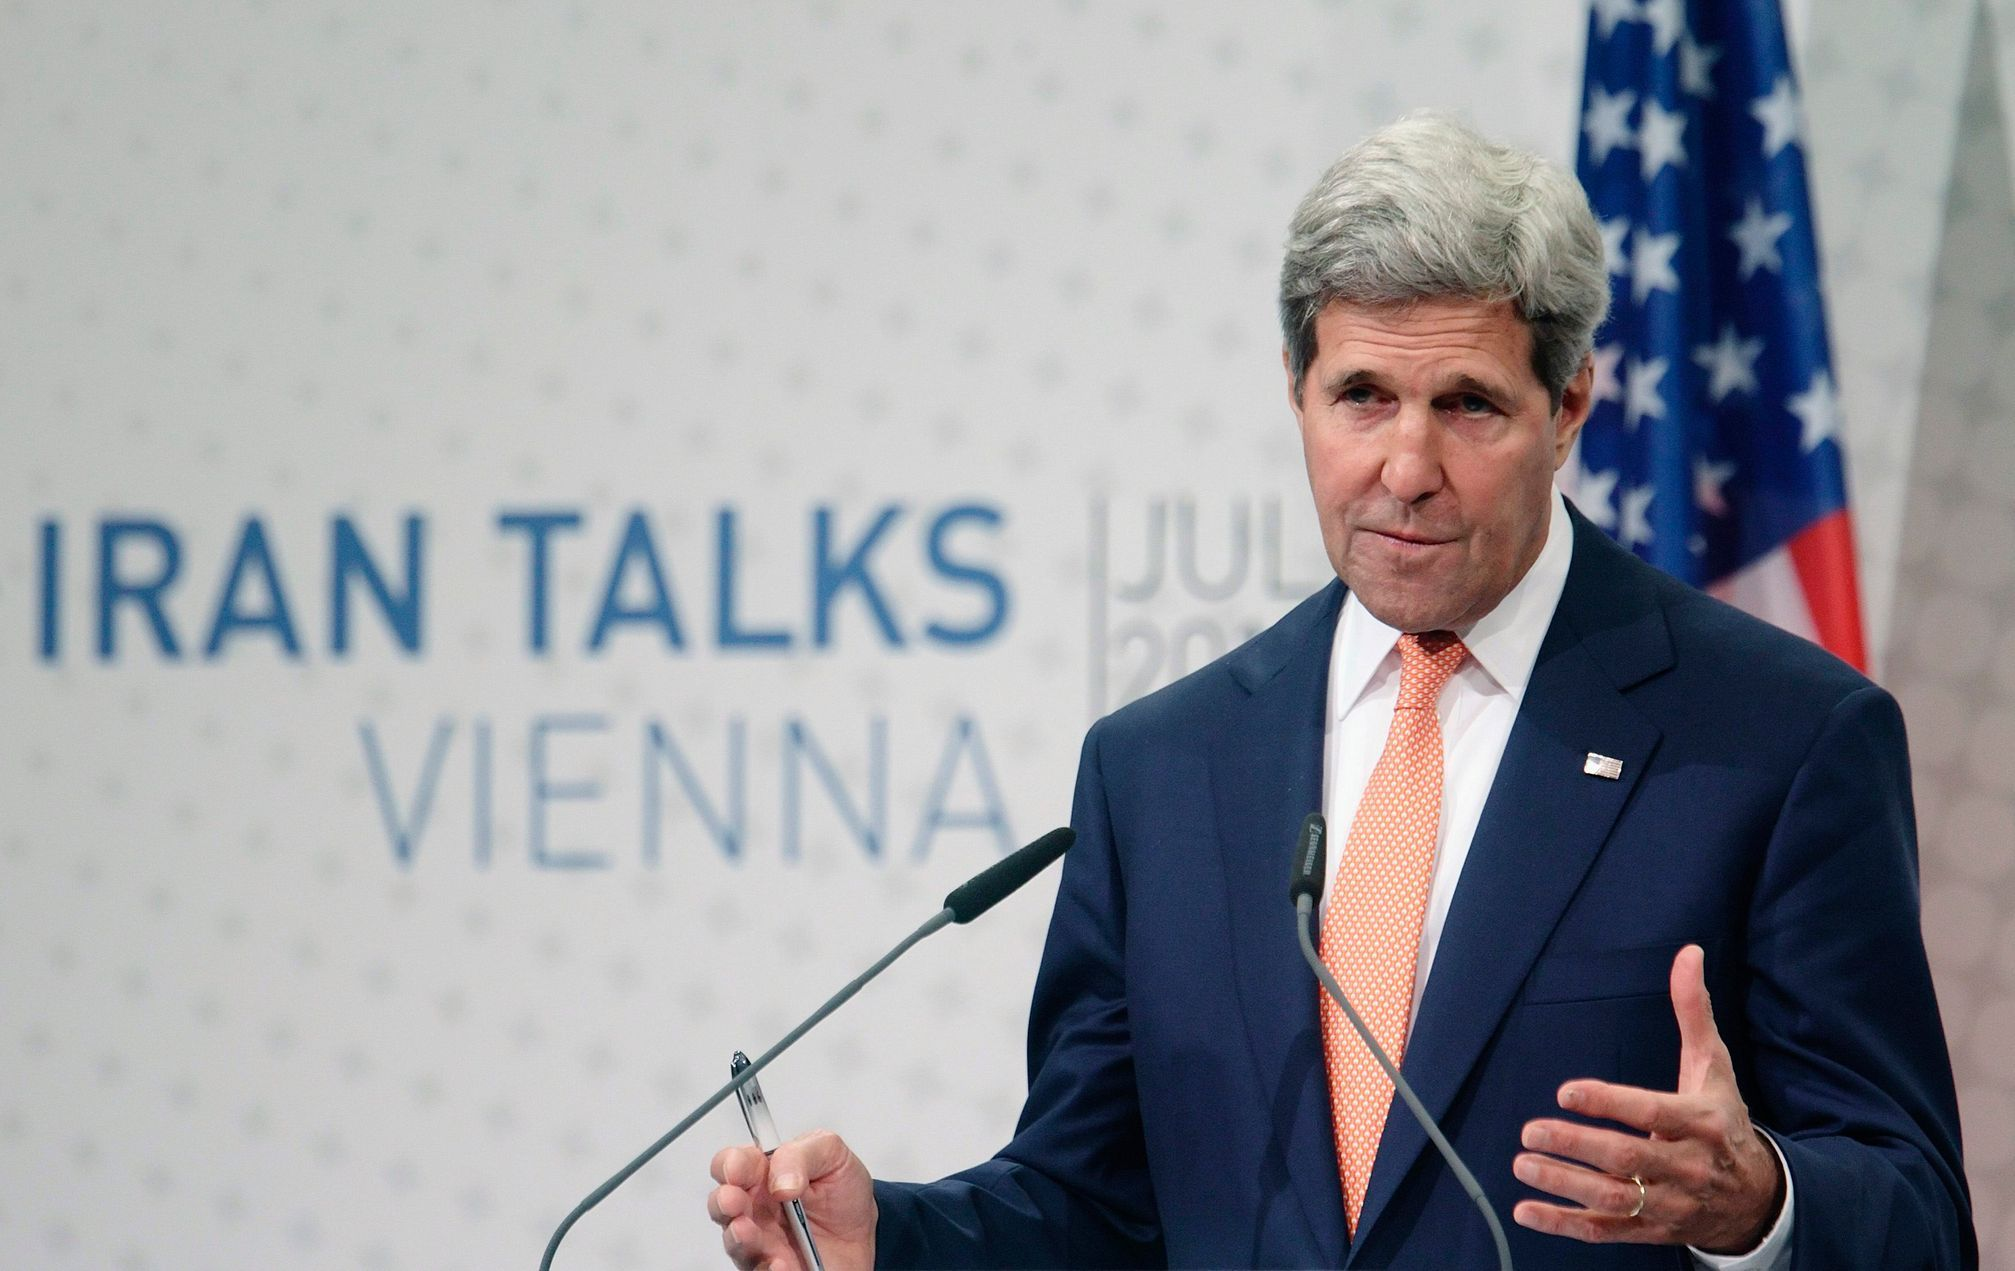 U.S. Secretary of State John Kerry speaks during a news conference in Vienna